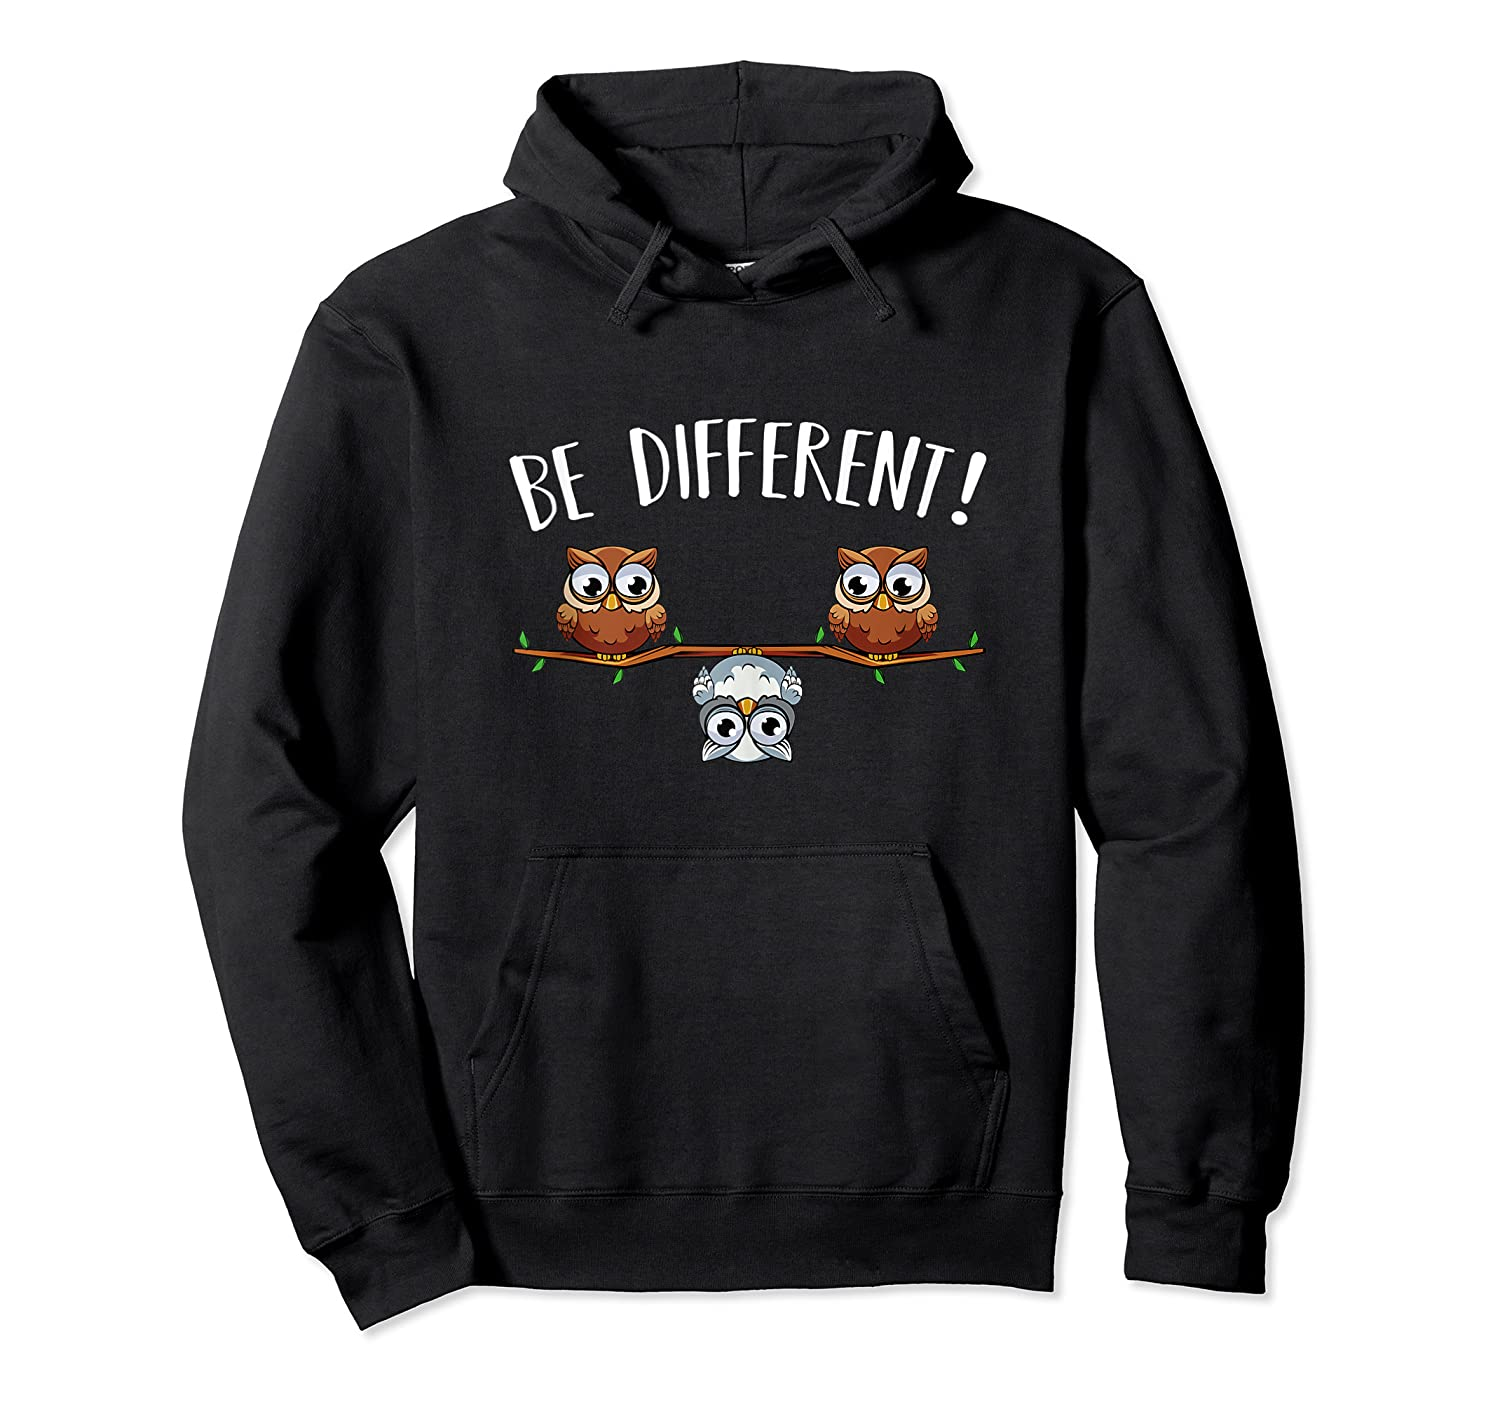 Be Different Owls Funny Animal Bird Lover Kawaii Quotes Tank Top Shirts Unisex Pullover Hoodie